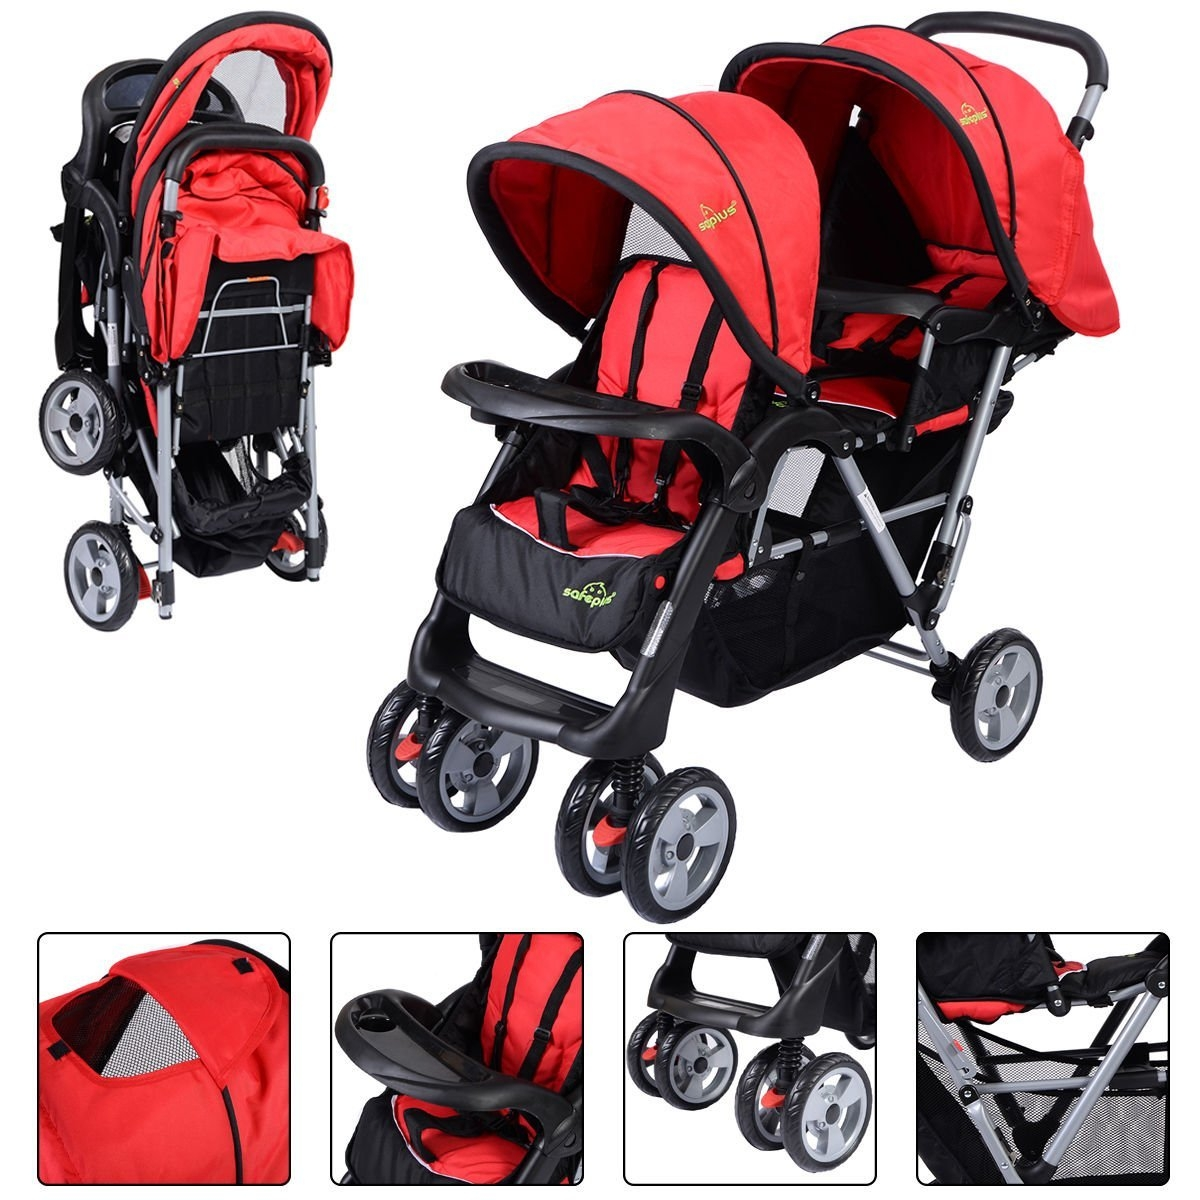 Chicco New For Baby Foldable Twin Baby Double Stroller Kids Jogger Travel Infant Pushchair Red- PUNER Store